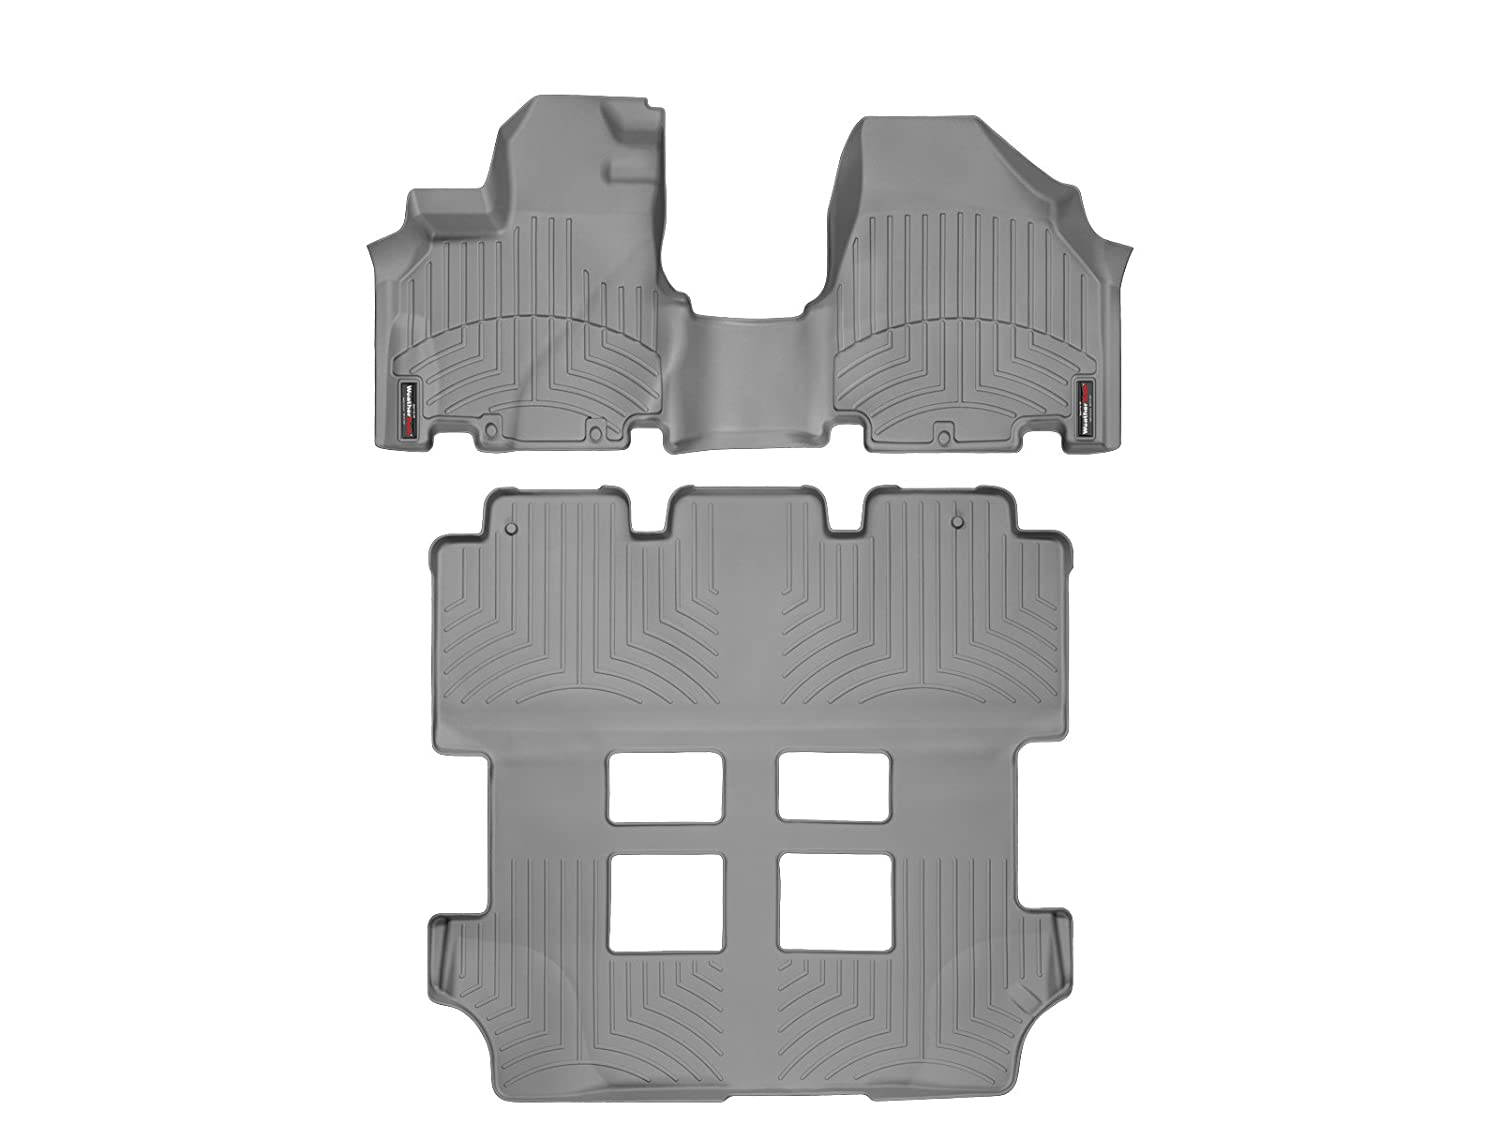 Weathertech floor mats honda odyssey 2016 - Amazon Com 2011 2015 Honda Odyssey Weathertech Floor Liners Full Set Includes 1st And 2nd Row Over The Hump Grey Automotive